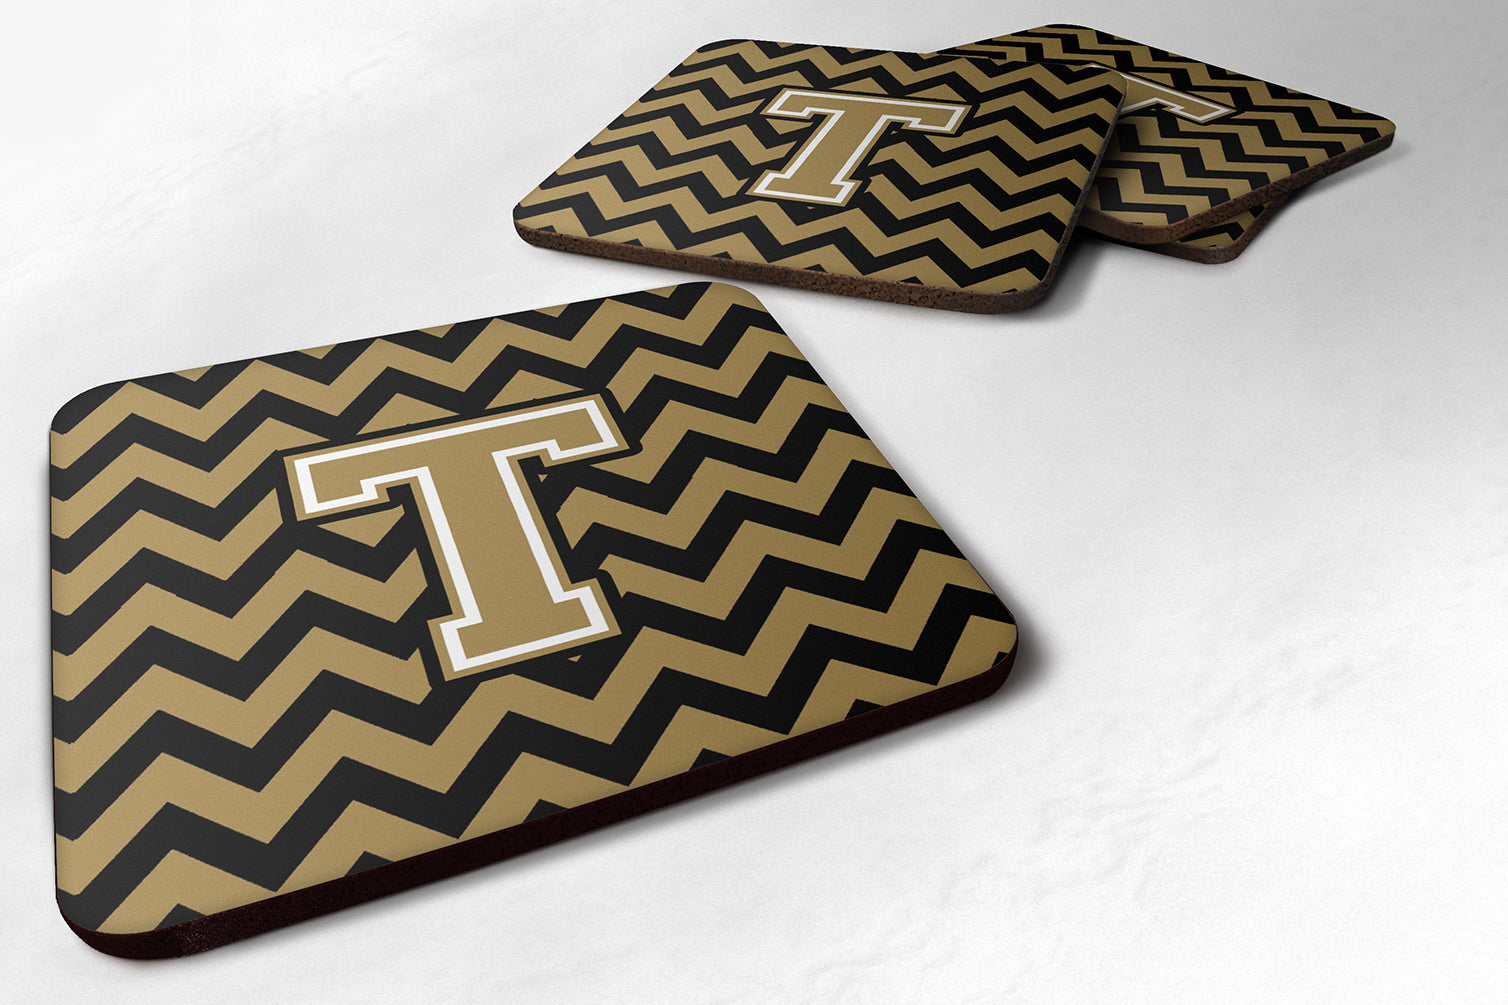 Letter T Chevron Black and Gold  Foam Coaster Set of 4 CJ1050-TFC by Caroline's Treasures